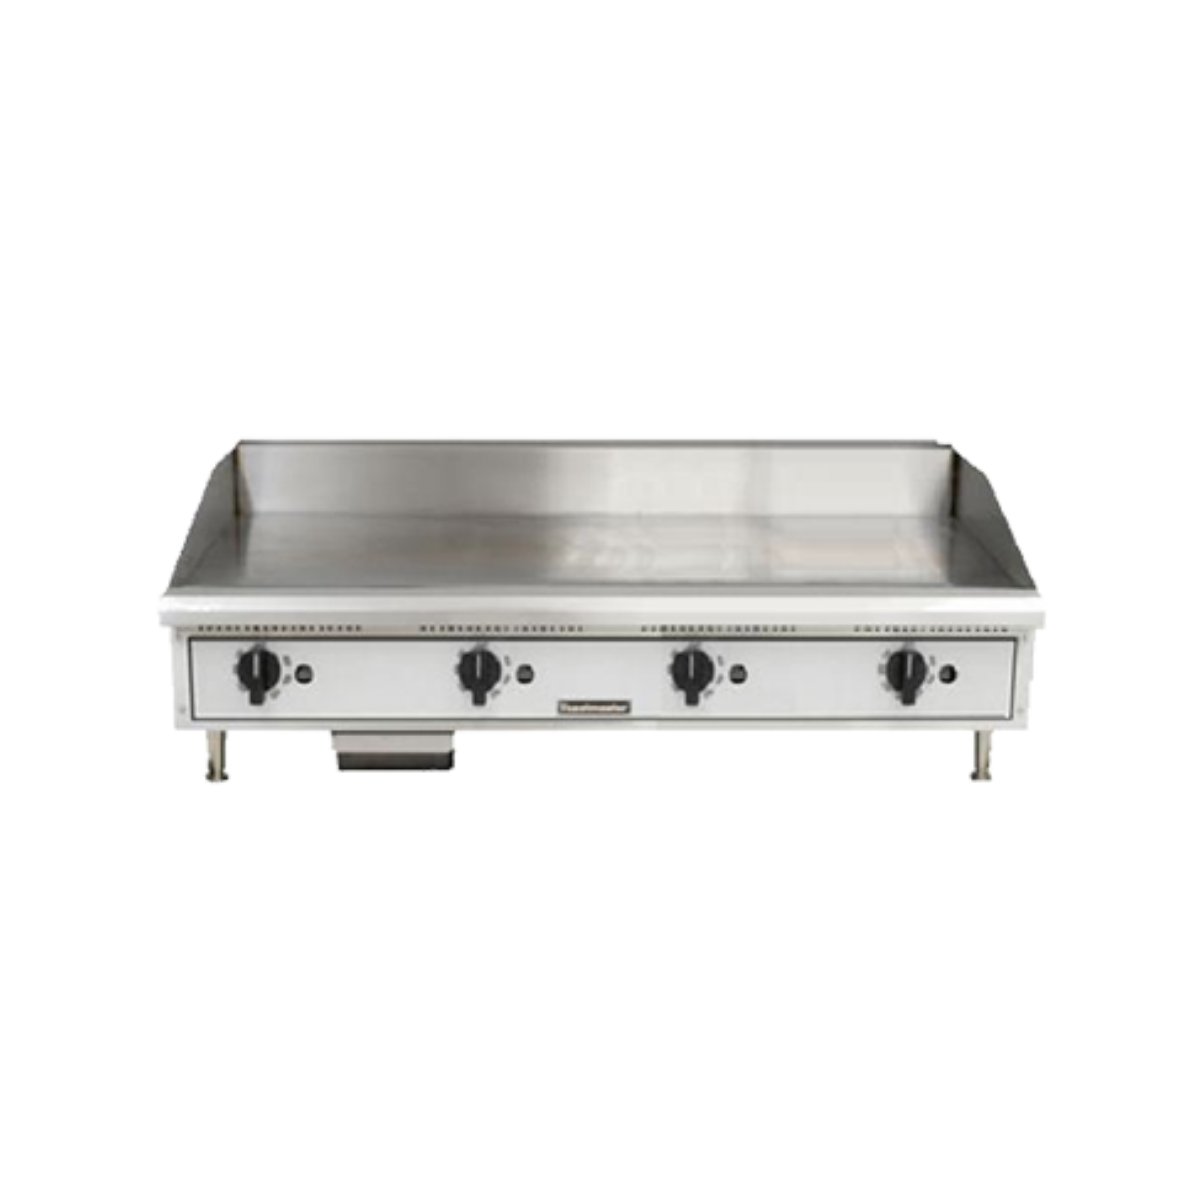 Toastmaster TMGT48 Countertop Griddle, Gas